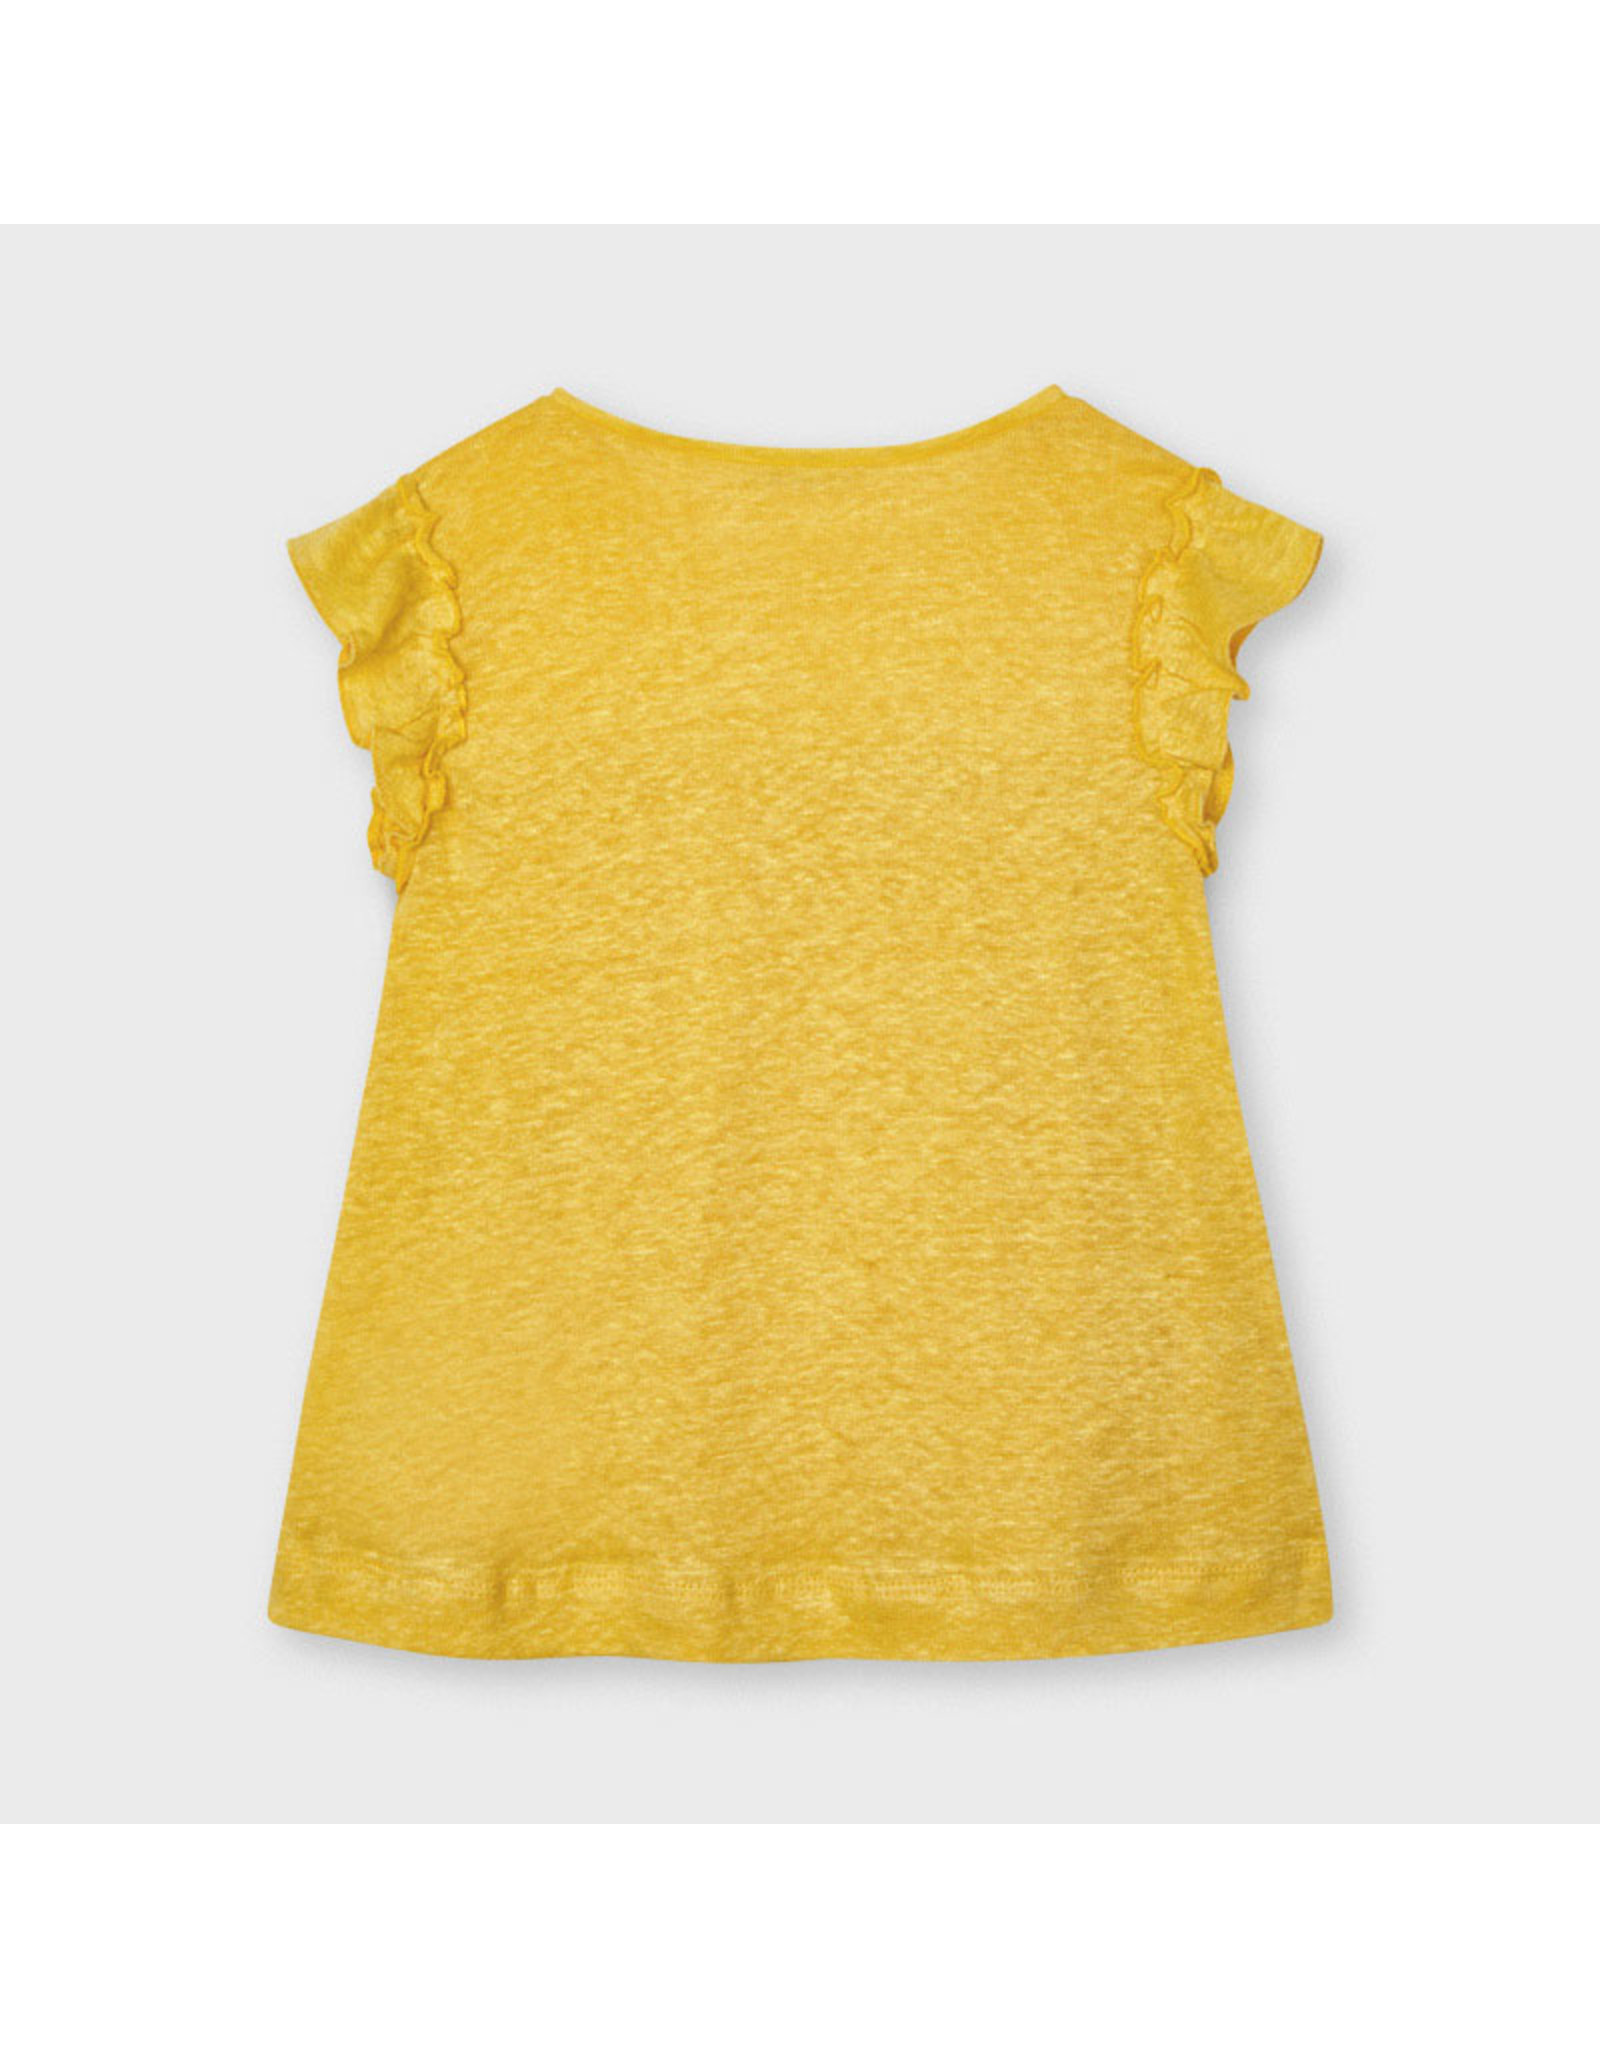 Mayoral linen s/s t-shirt  Mustard